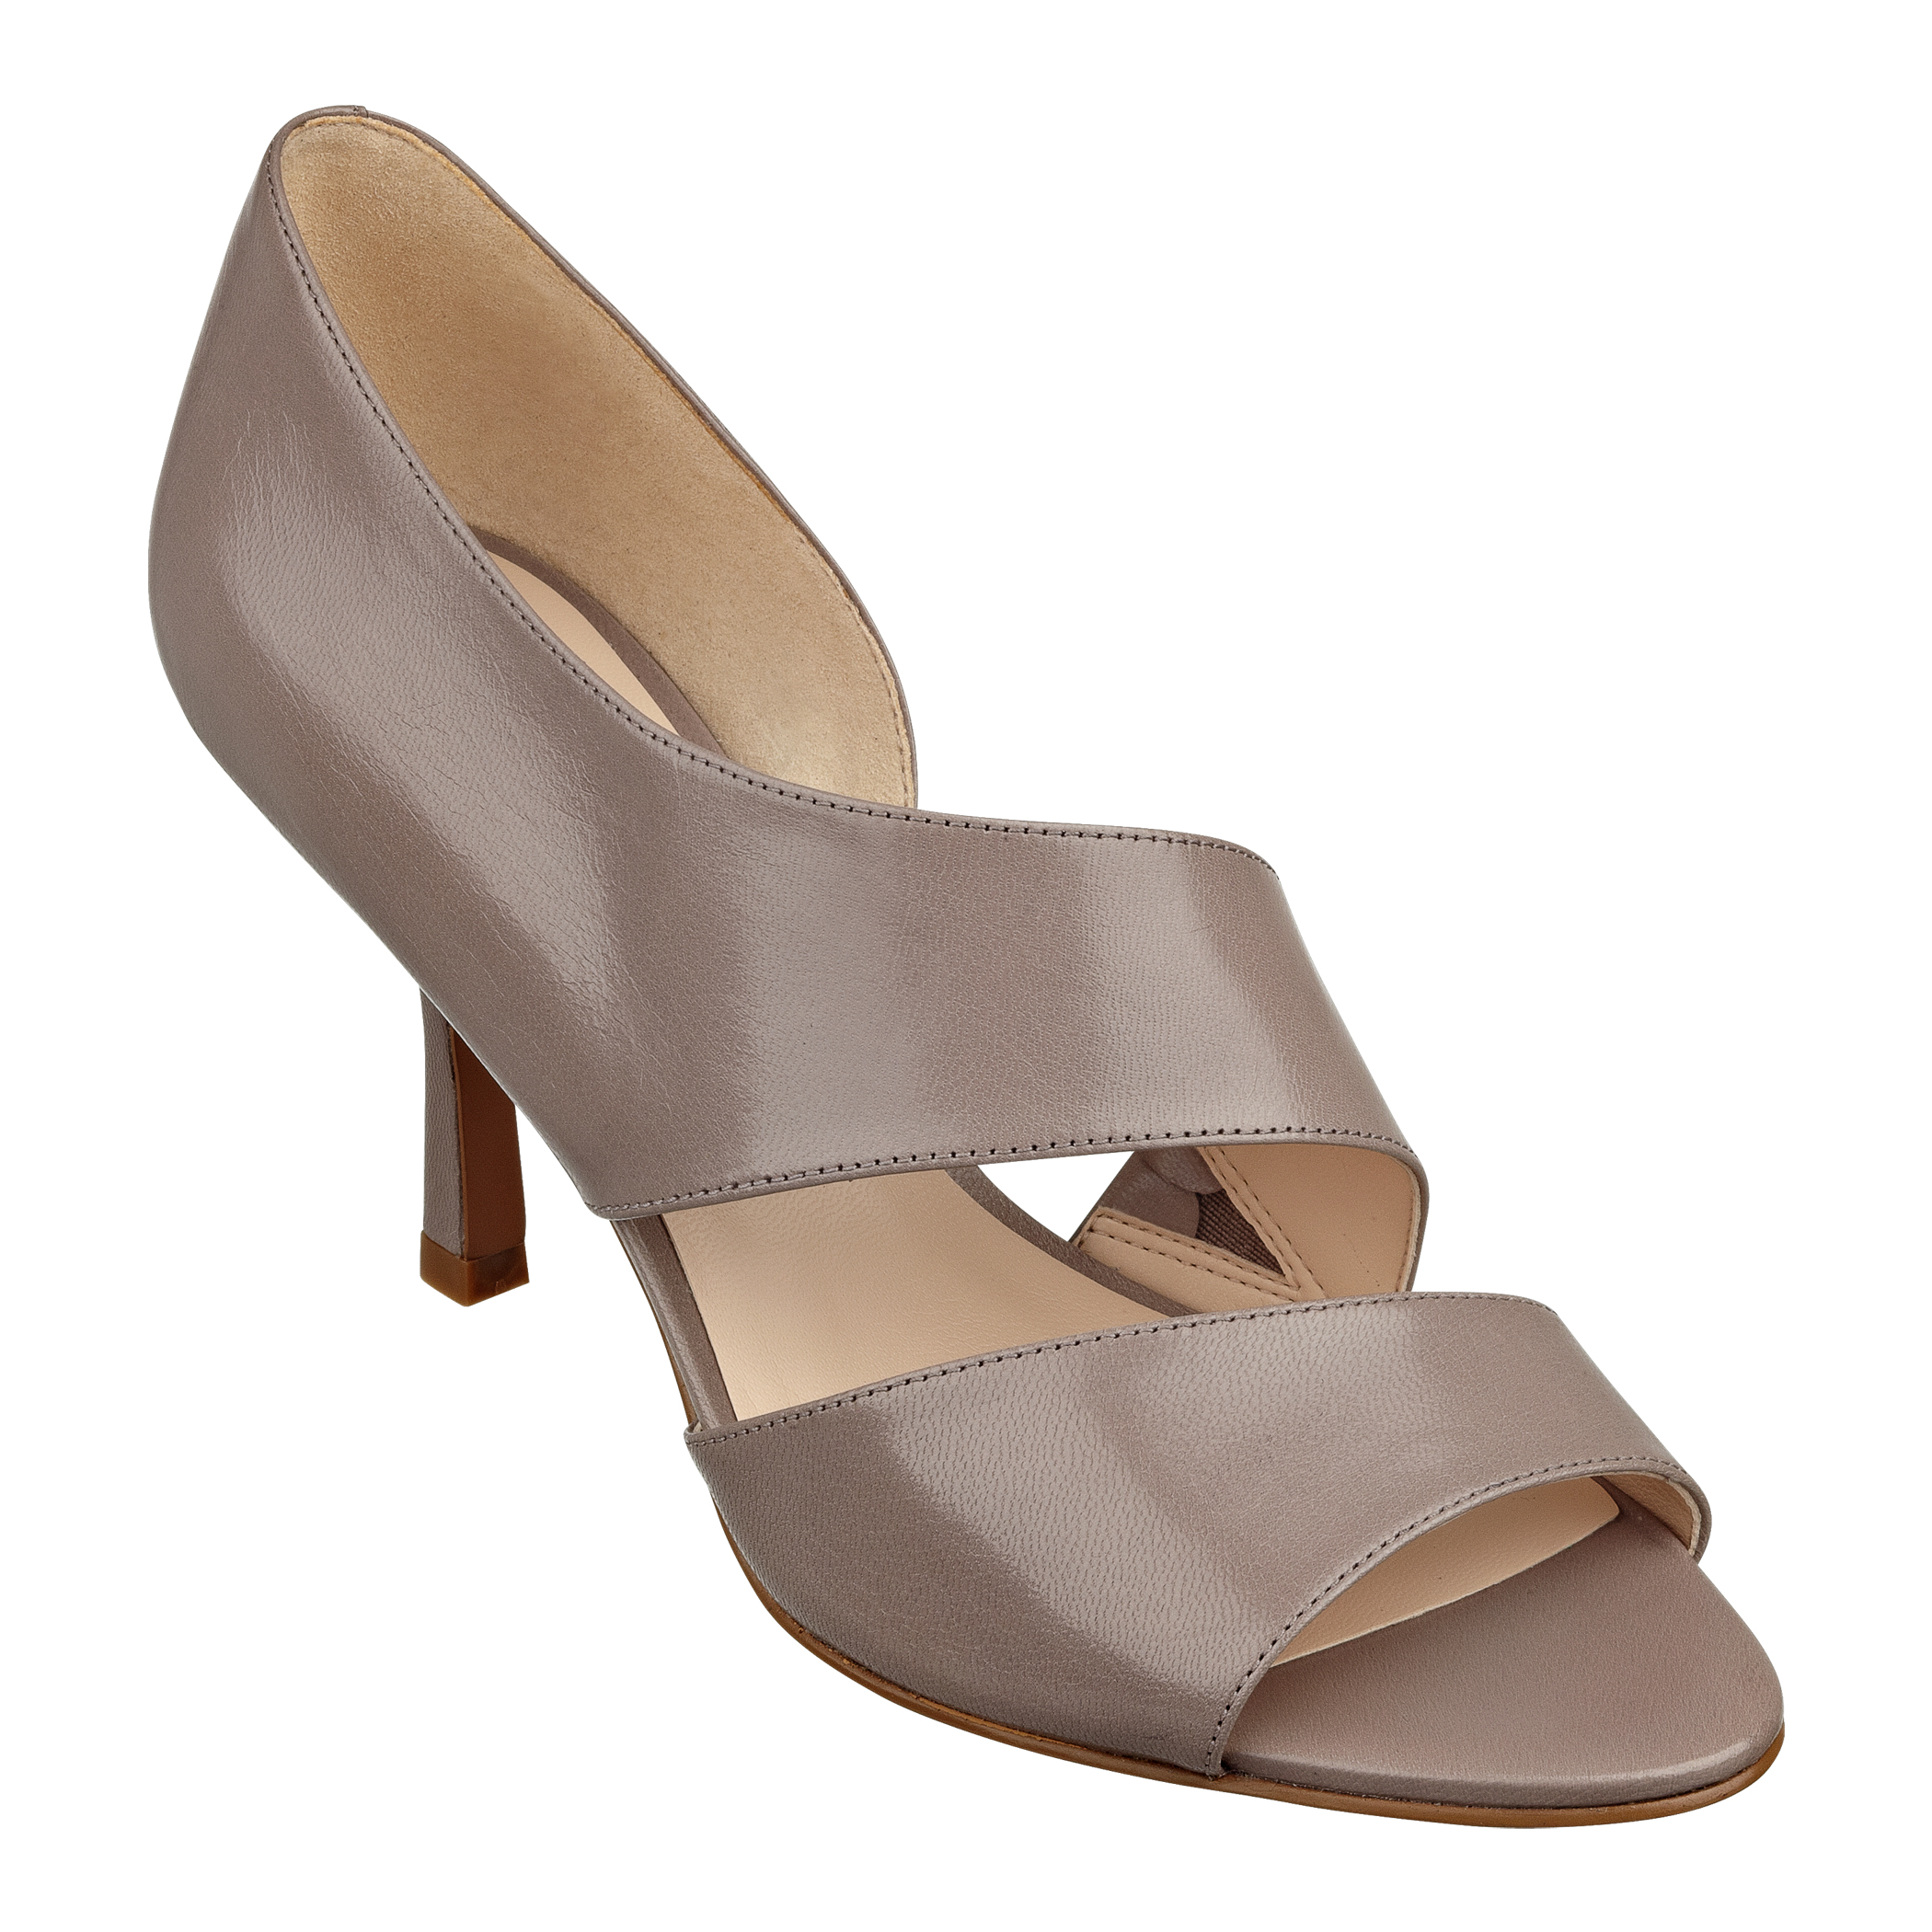 Latest Fashion of Stiletto & Heels Collection for women by Nine West (4)